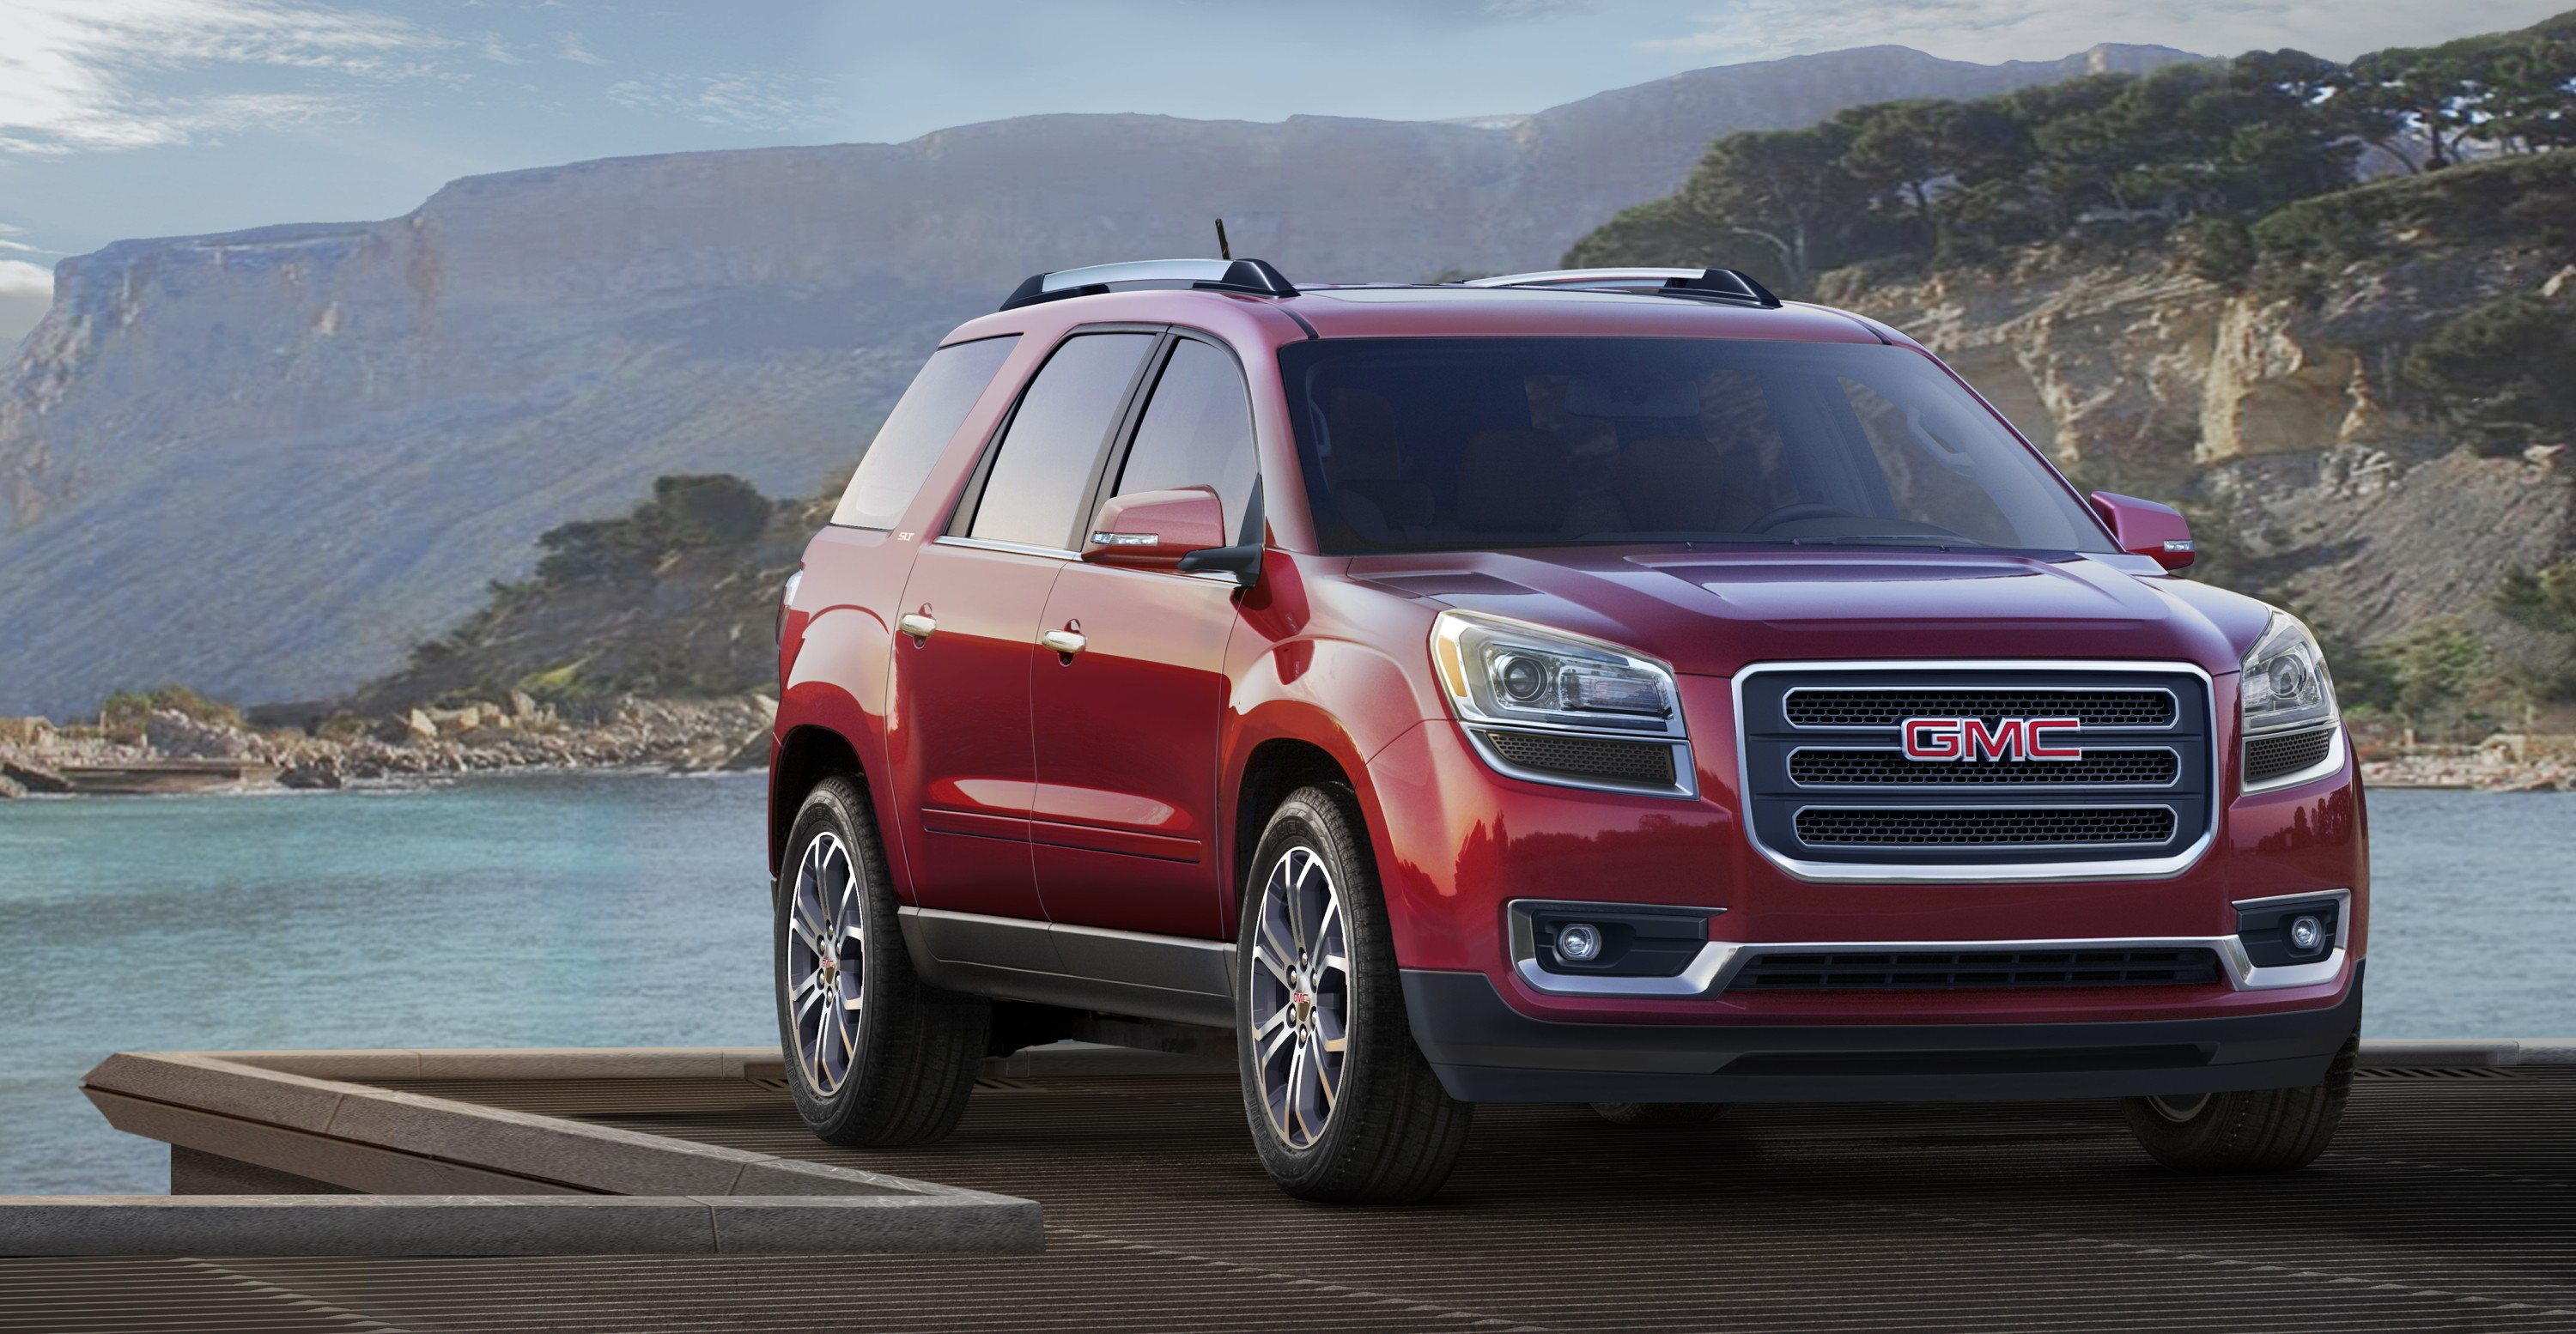 terrain suv video exterior page models denali gmc new suvs product vehicles and trucks luxury